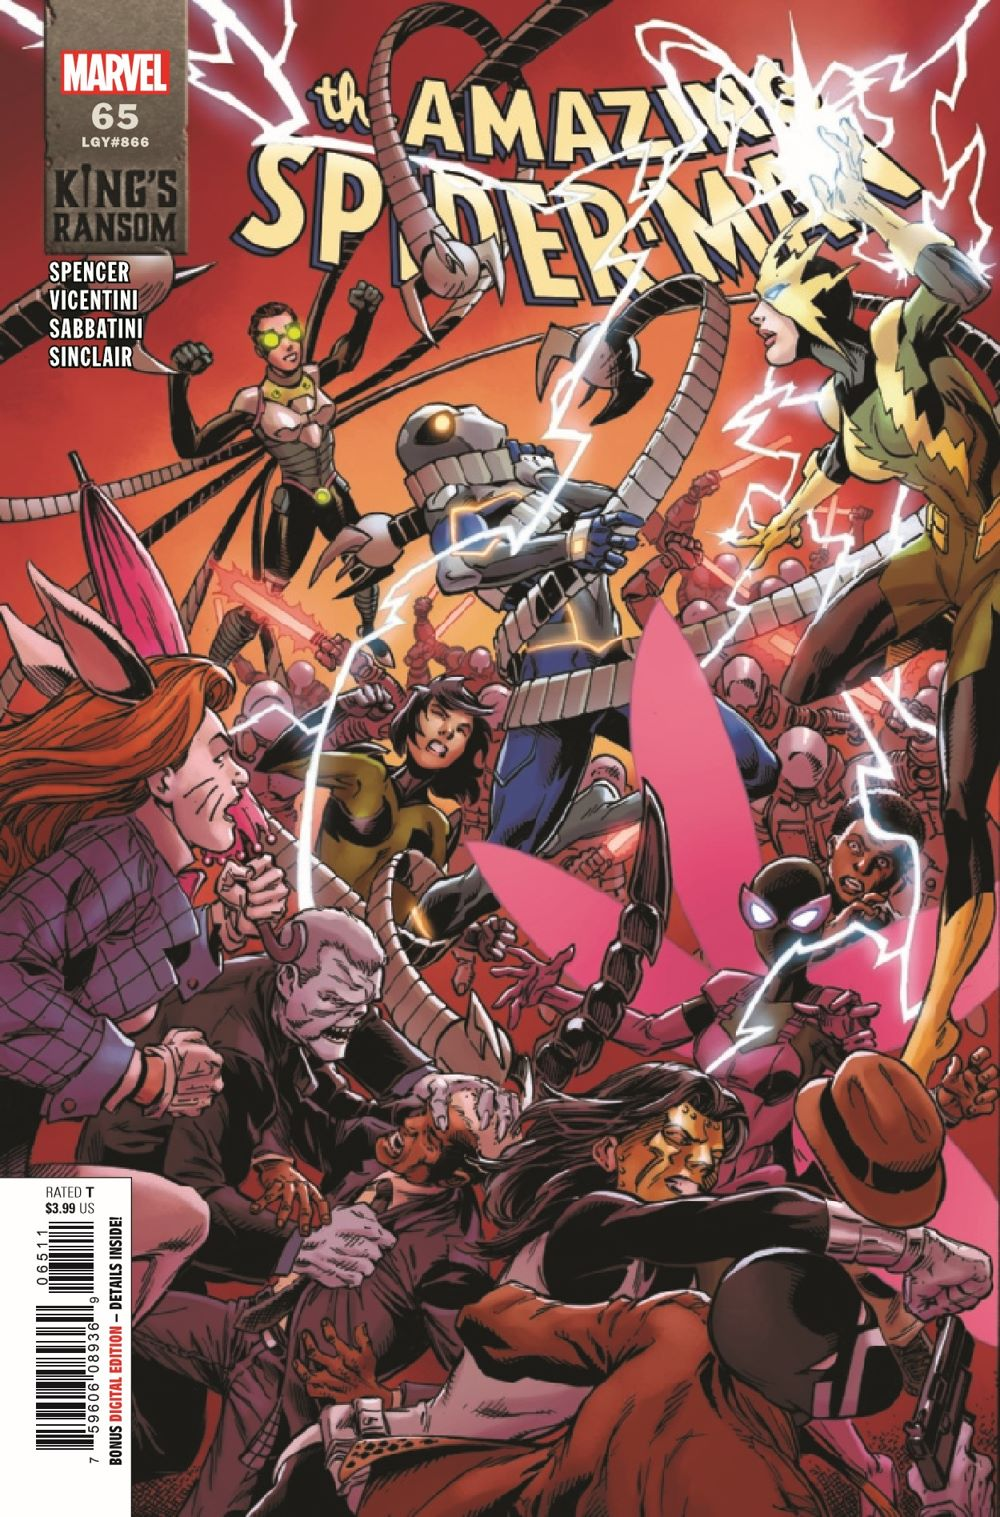 ASM2018065_Preview-1 ComicList Previews: THE AMAZING SPIDER-MAN #65